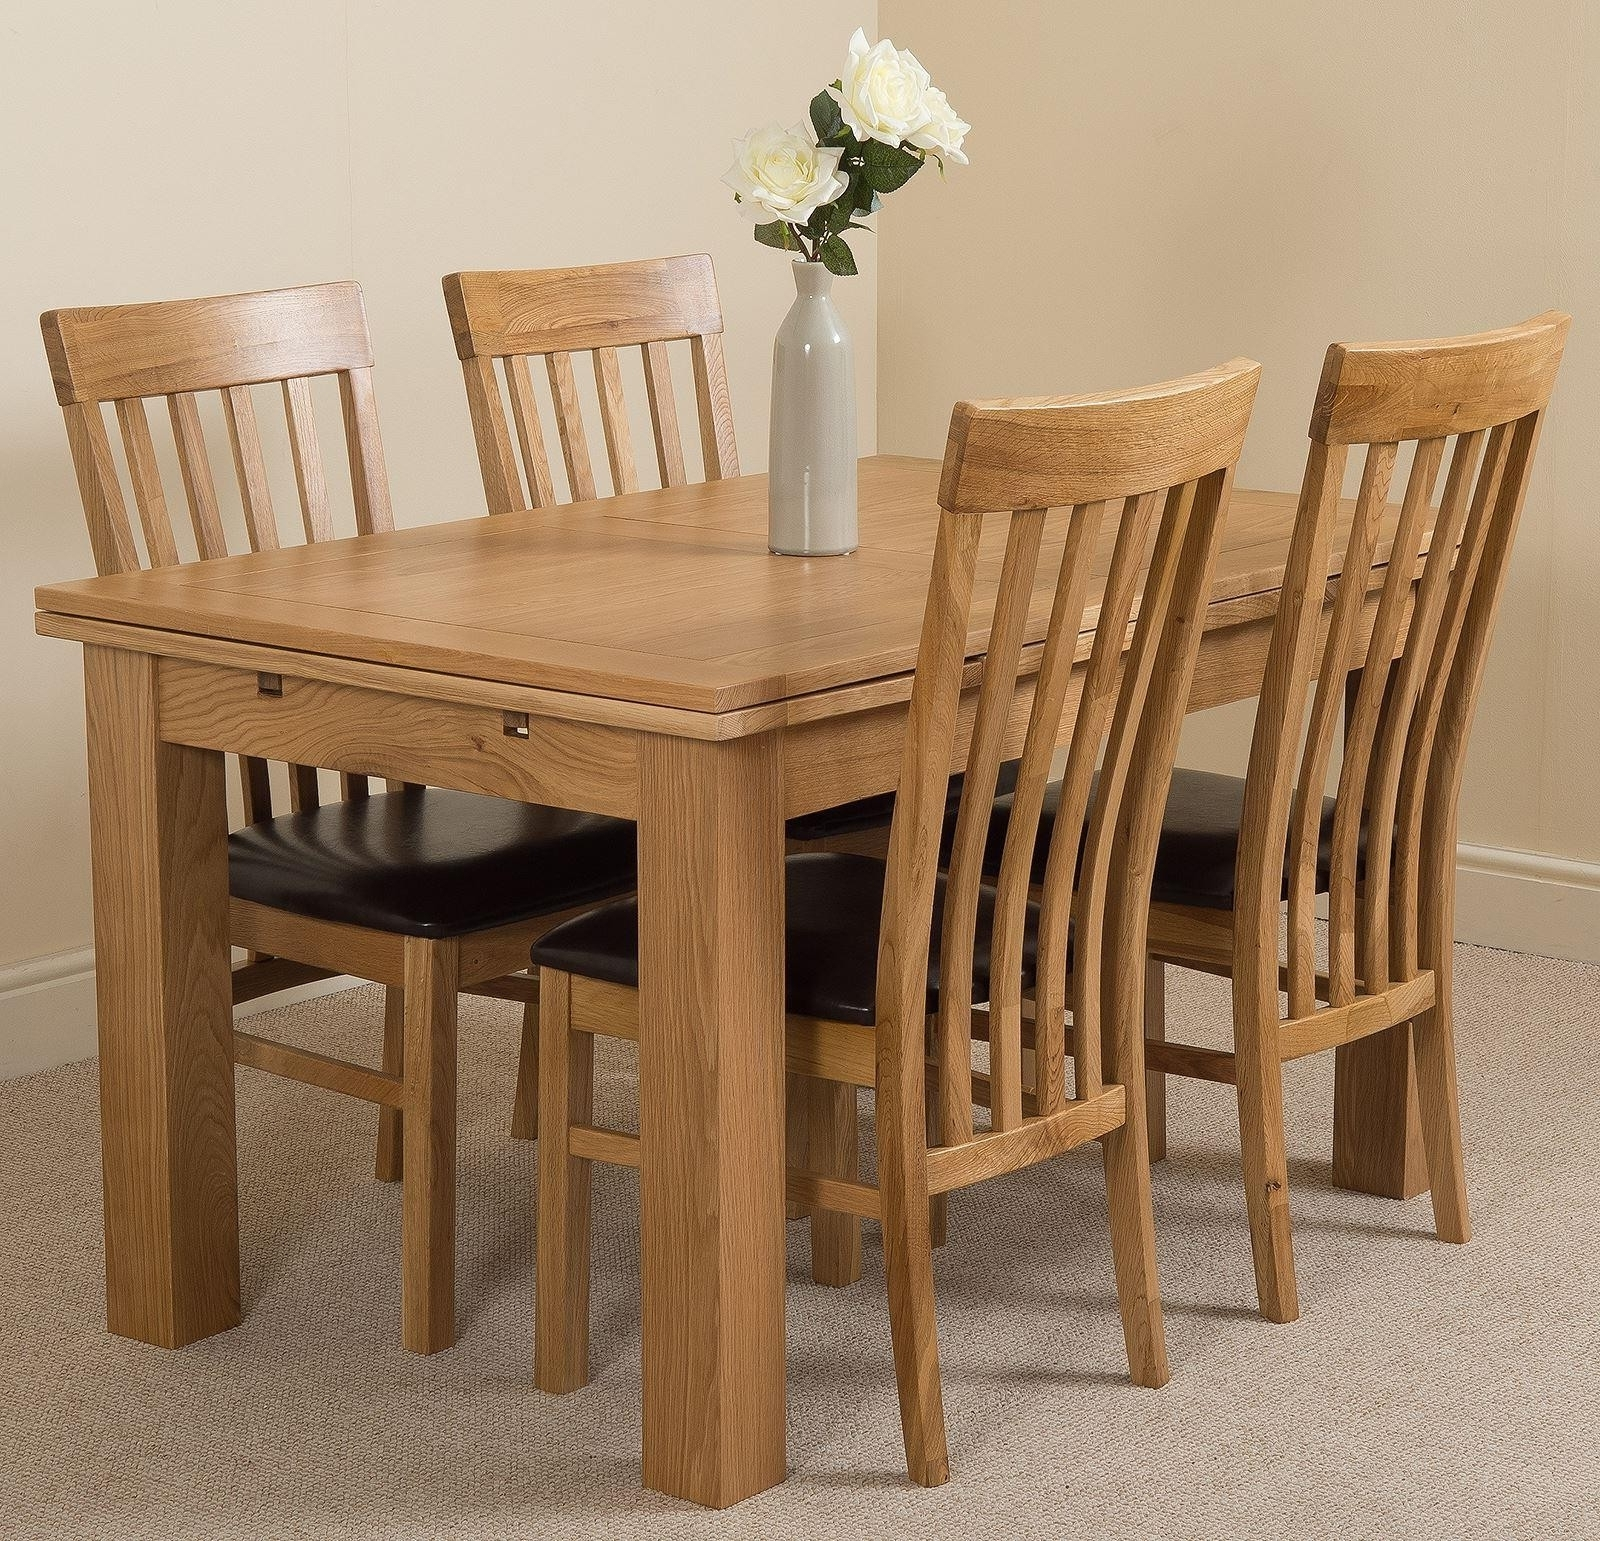 Best And Newest Richmond Oak Small Dining Set 4 Harvard Chairs Throughout Extendable Dining Table And 4 Chairs (View 6 of 25)